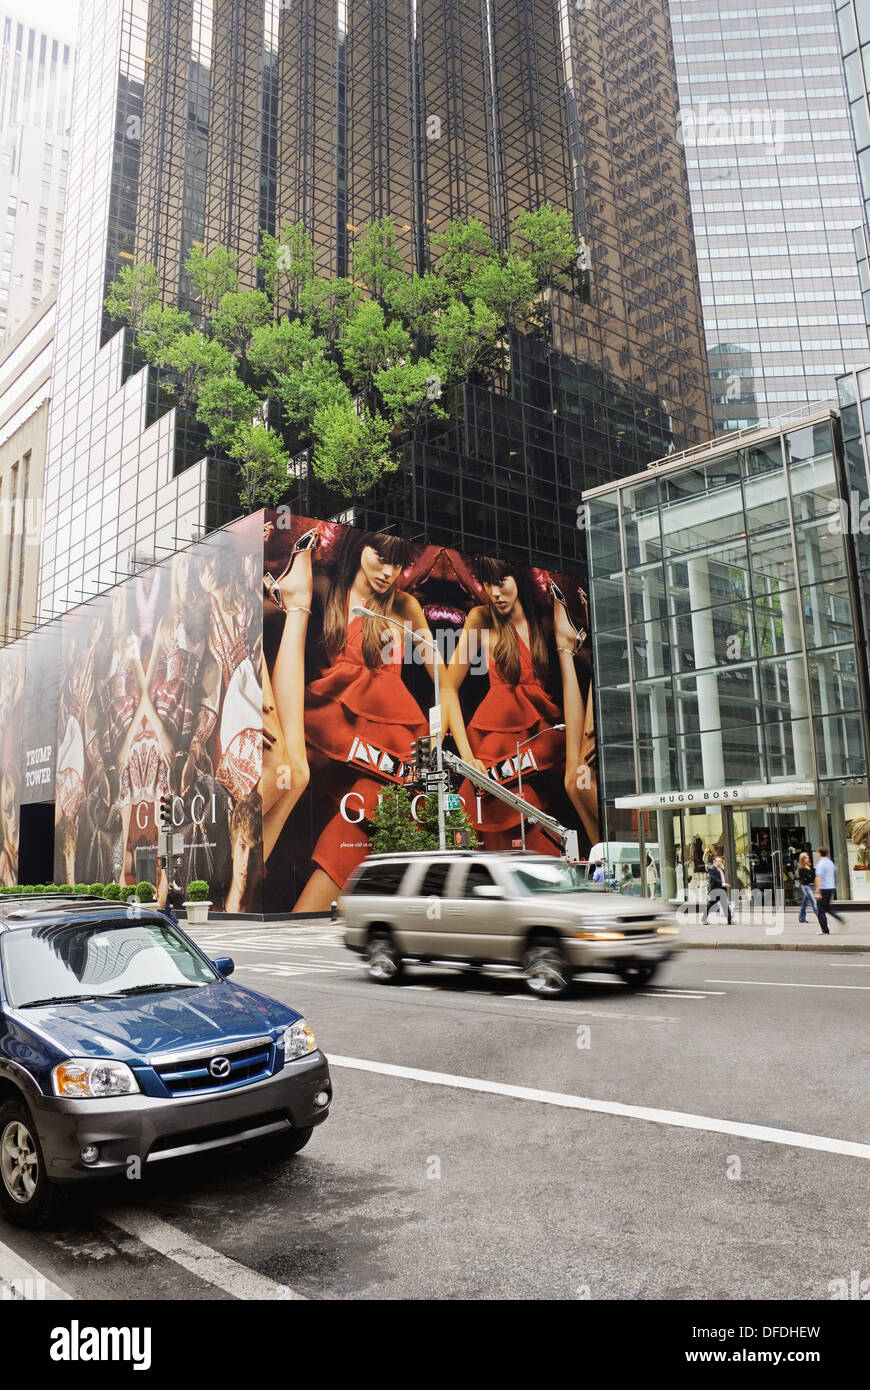 gucci 5th ave. 5th avenue, trump tower with gucci advertising and hugo boss store front, manhattan, new york city, york, usa ave